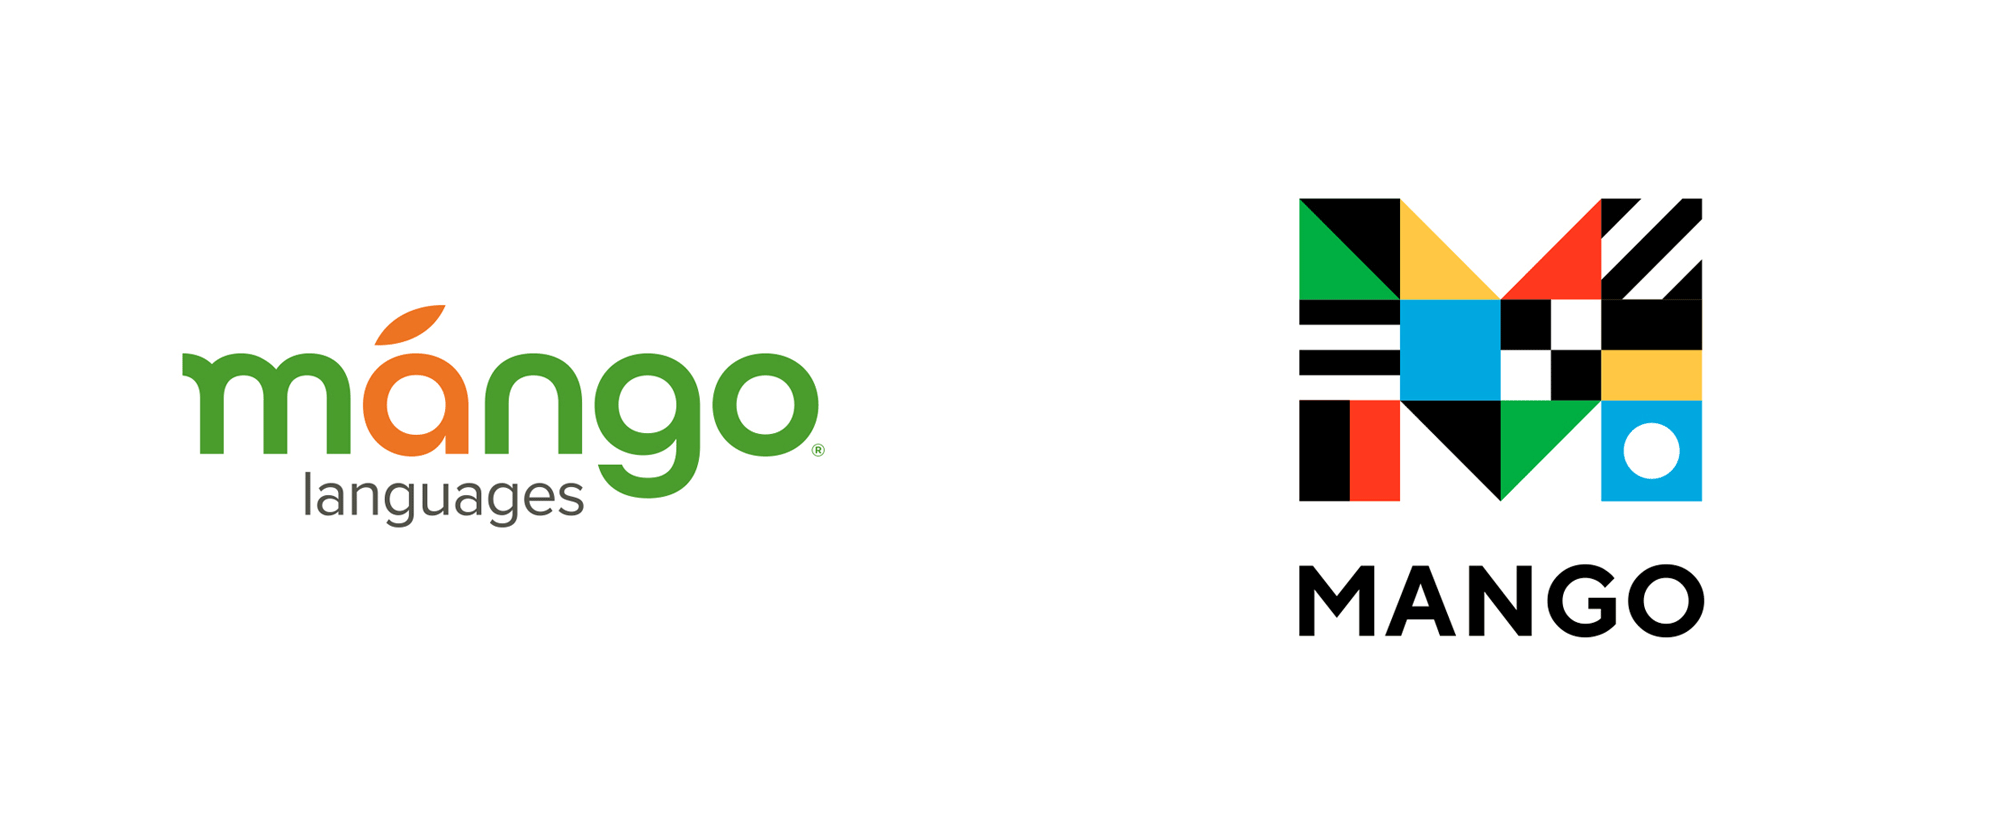 New Logo and Identity for Mango Languages by The Office of Experience